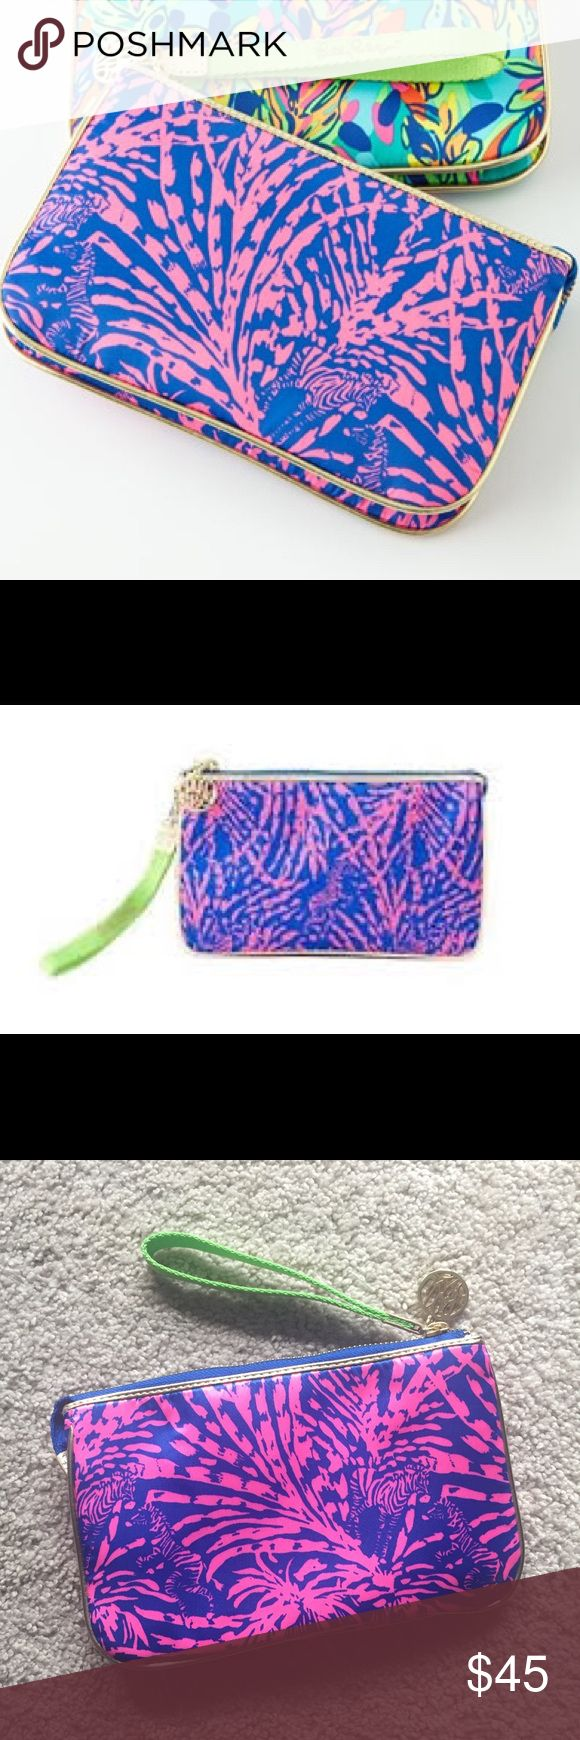 Rare Lilly Pulitzer Sapphire Blue Wristlet RARE Lilly Pulitzer Double Take Wristlet Sapphire Blue Rollin' in the Grass. NWOT in perfect condition. Nothing wrong with it I just never ended up using it. Doesn't include both wristlets shown in the first picture, only the pink/blue zebra Wristlet Lilly Pulitzer Bags Clutches & Wristlets